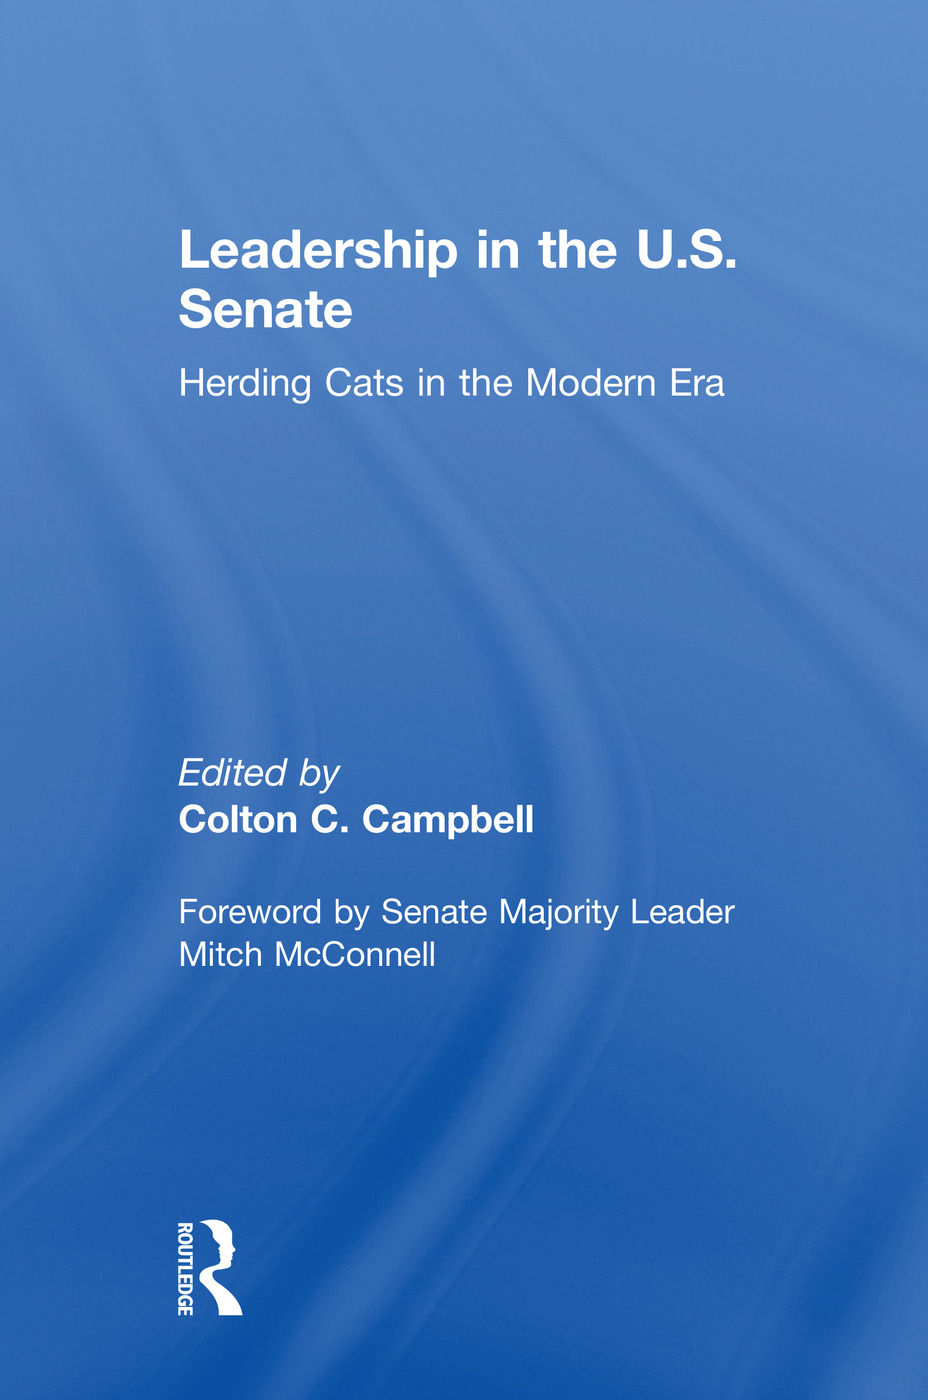 Leadership in the U.S. Senate: Herding Cats in the Modern Era book cover